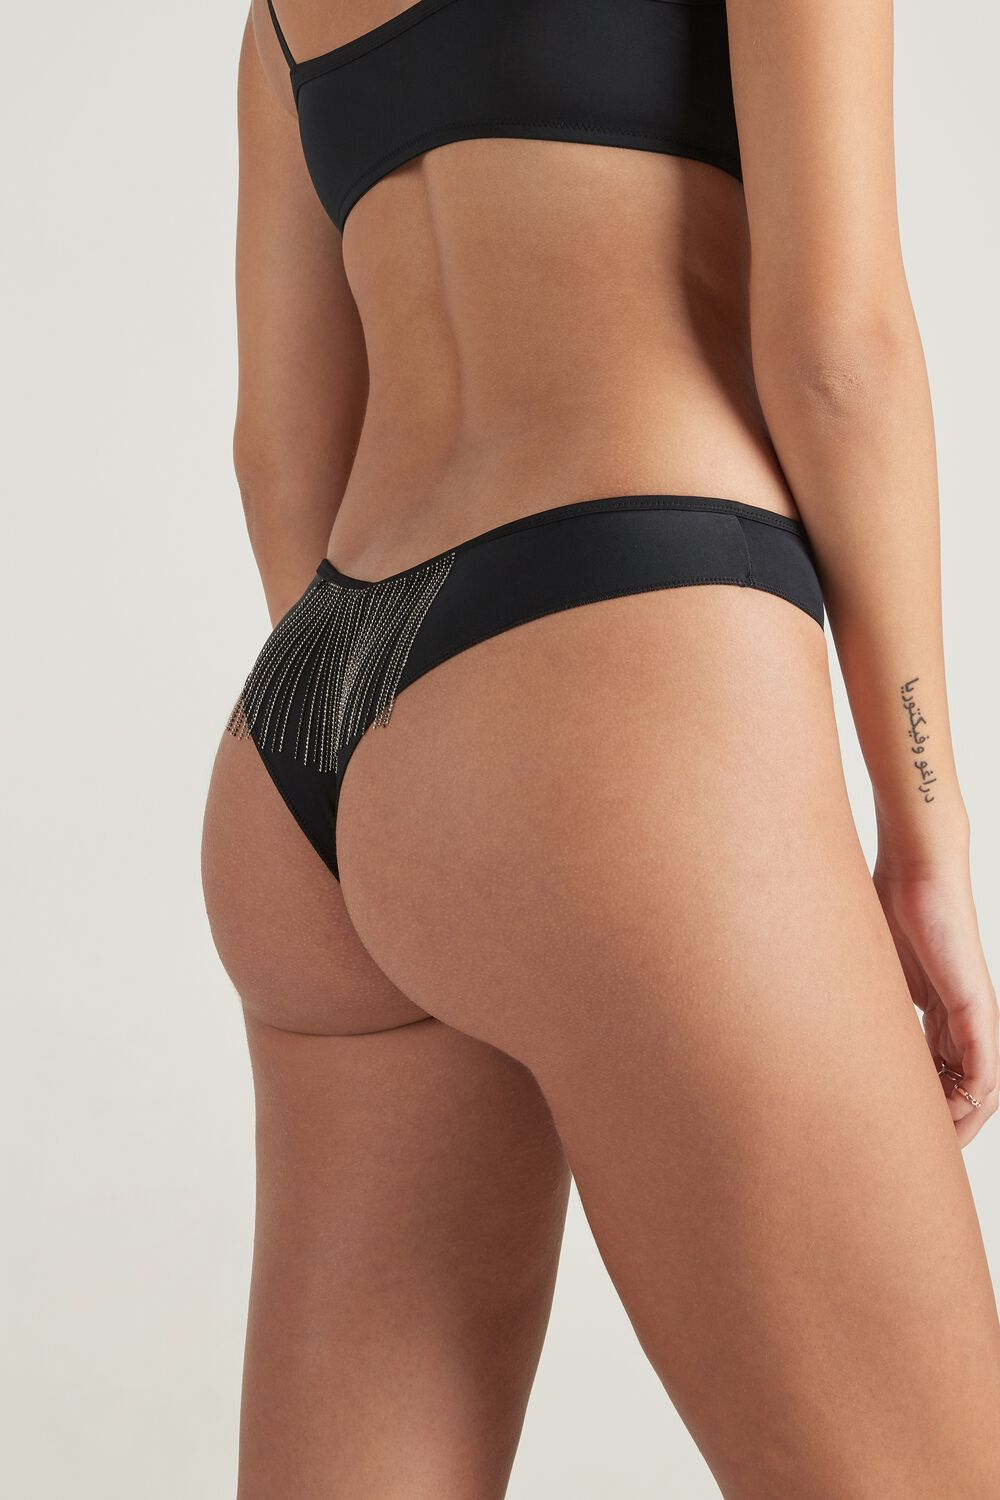 Fringes High-Cut Brazilian Brief